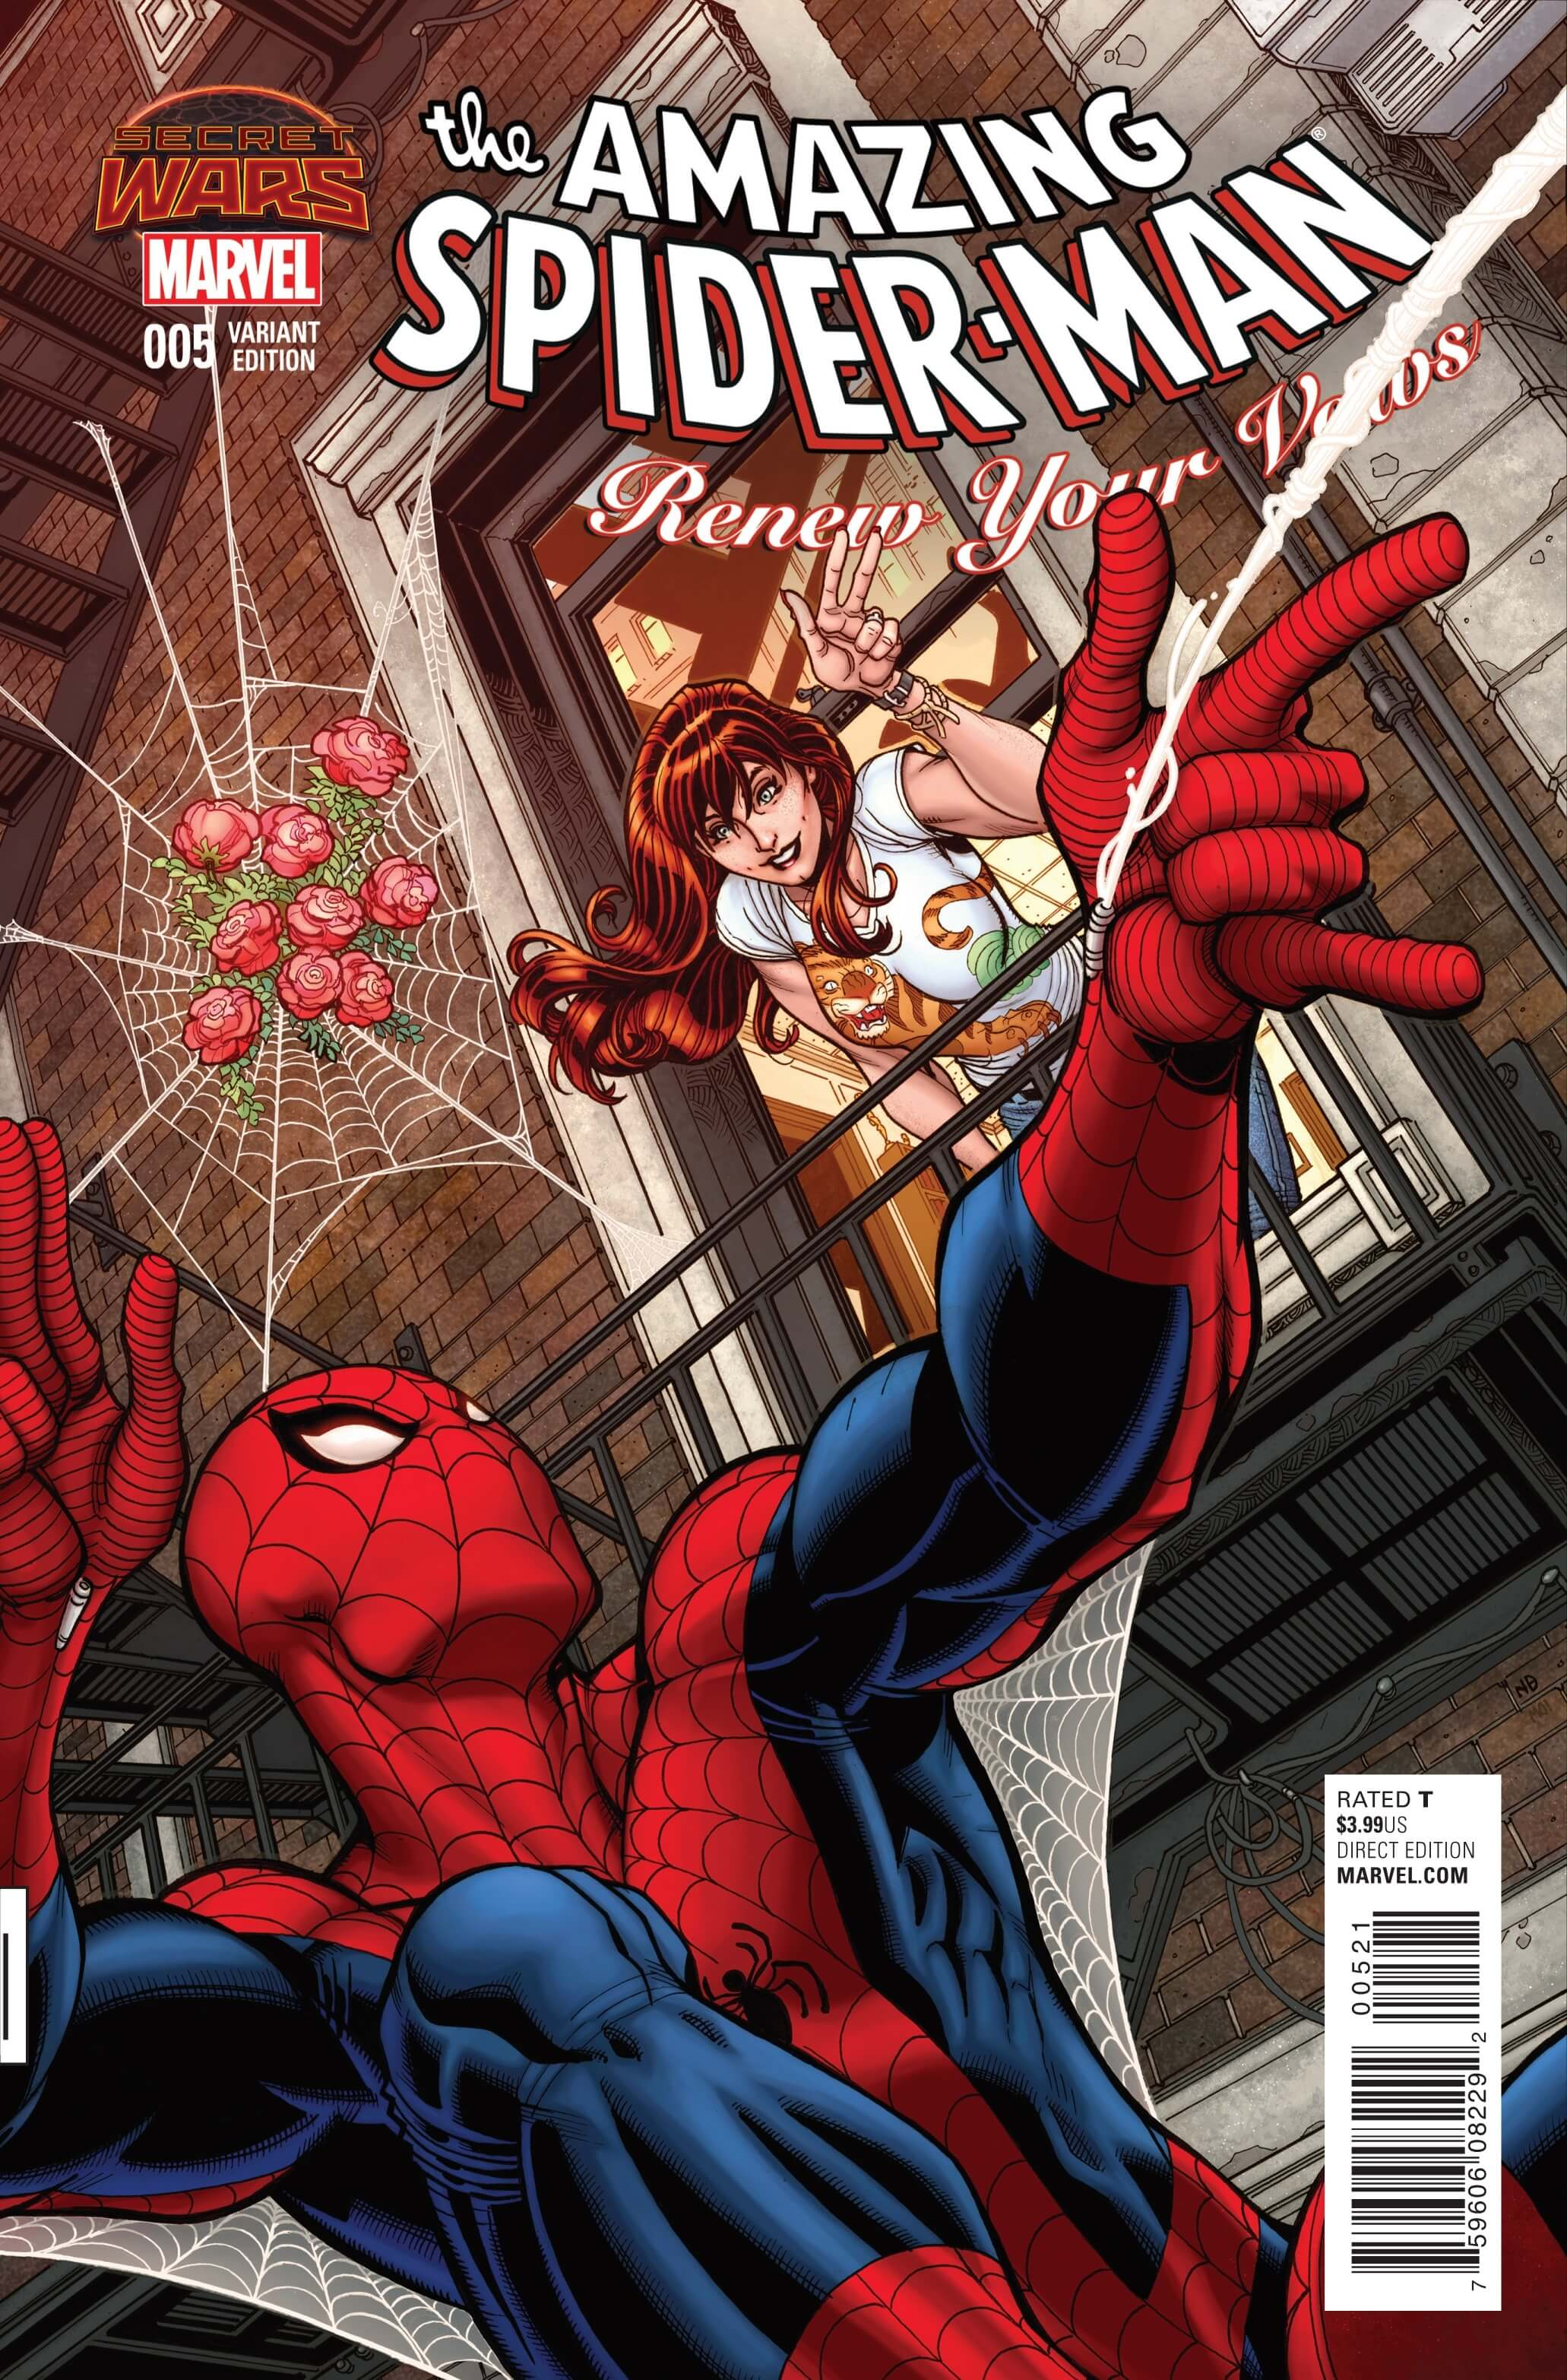 The Amazing Spider-Man Renew Your Vows #5cvrB